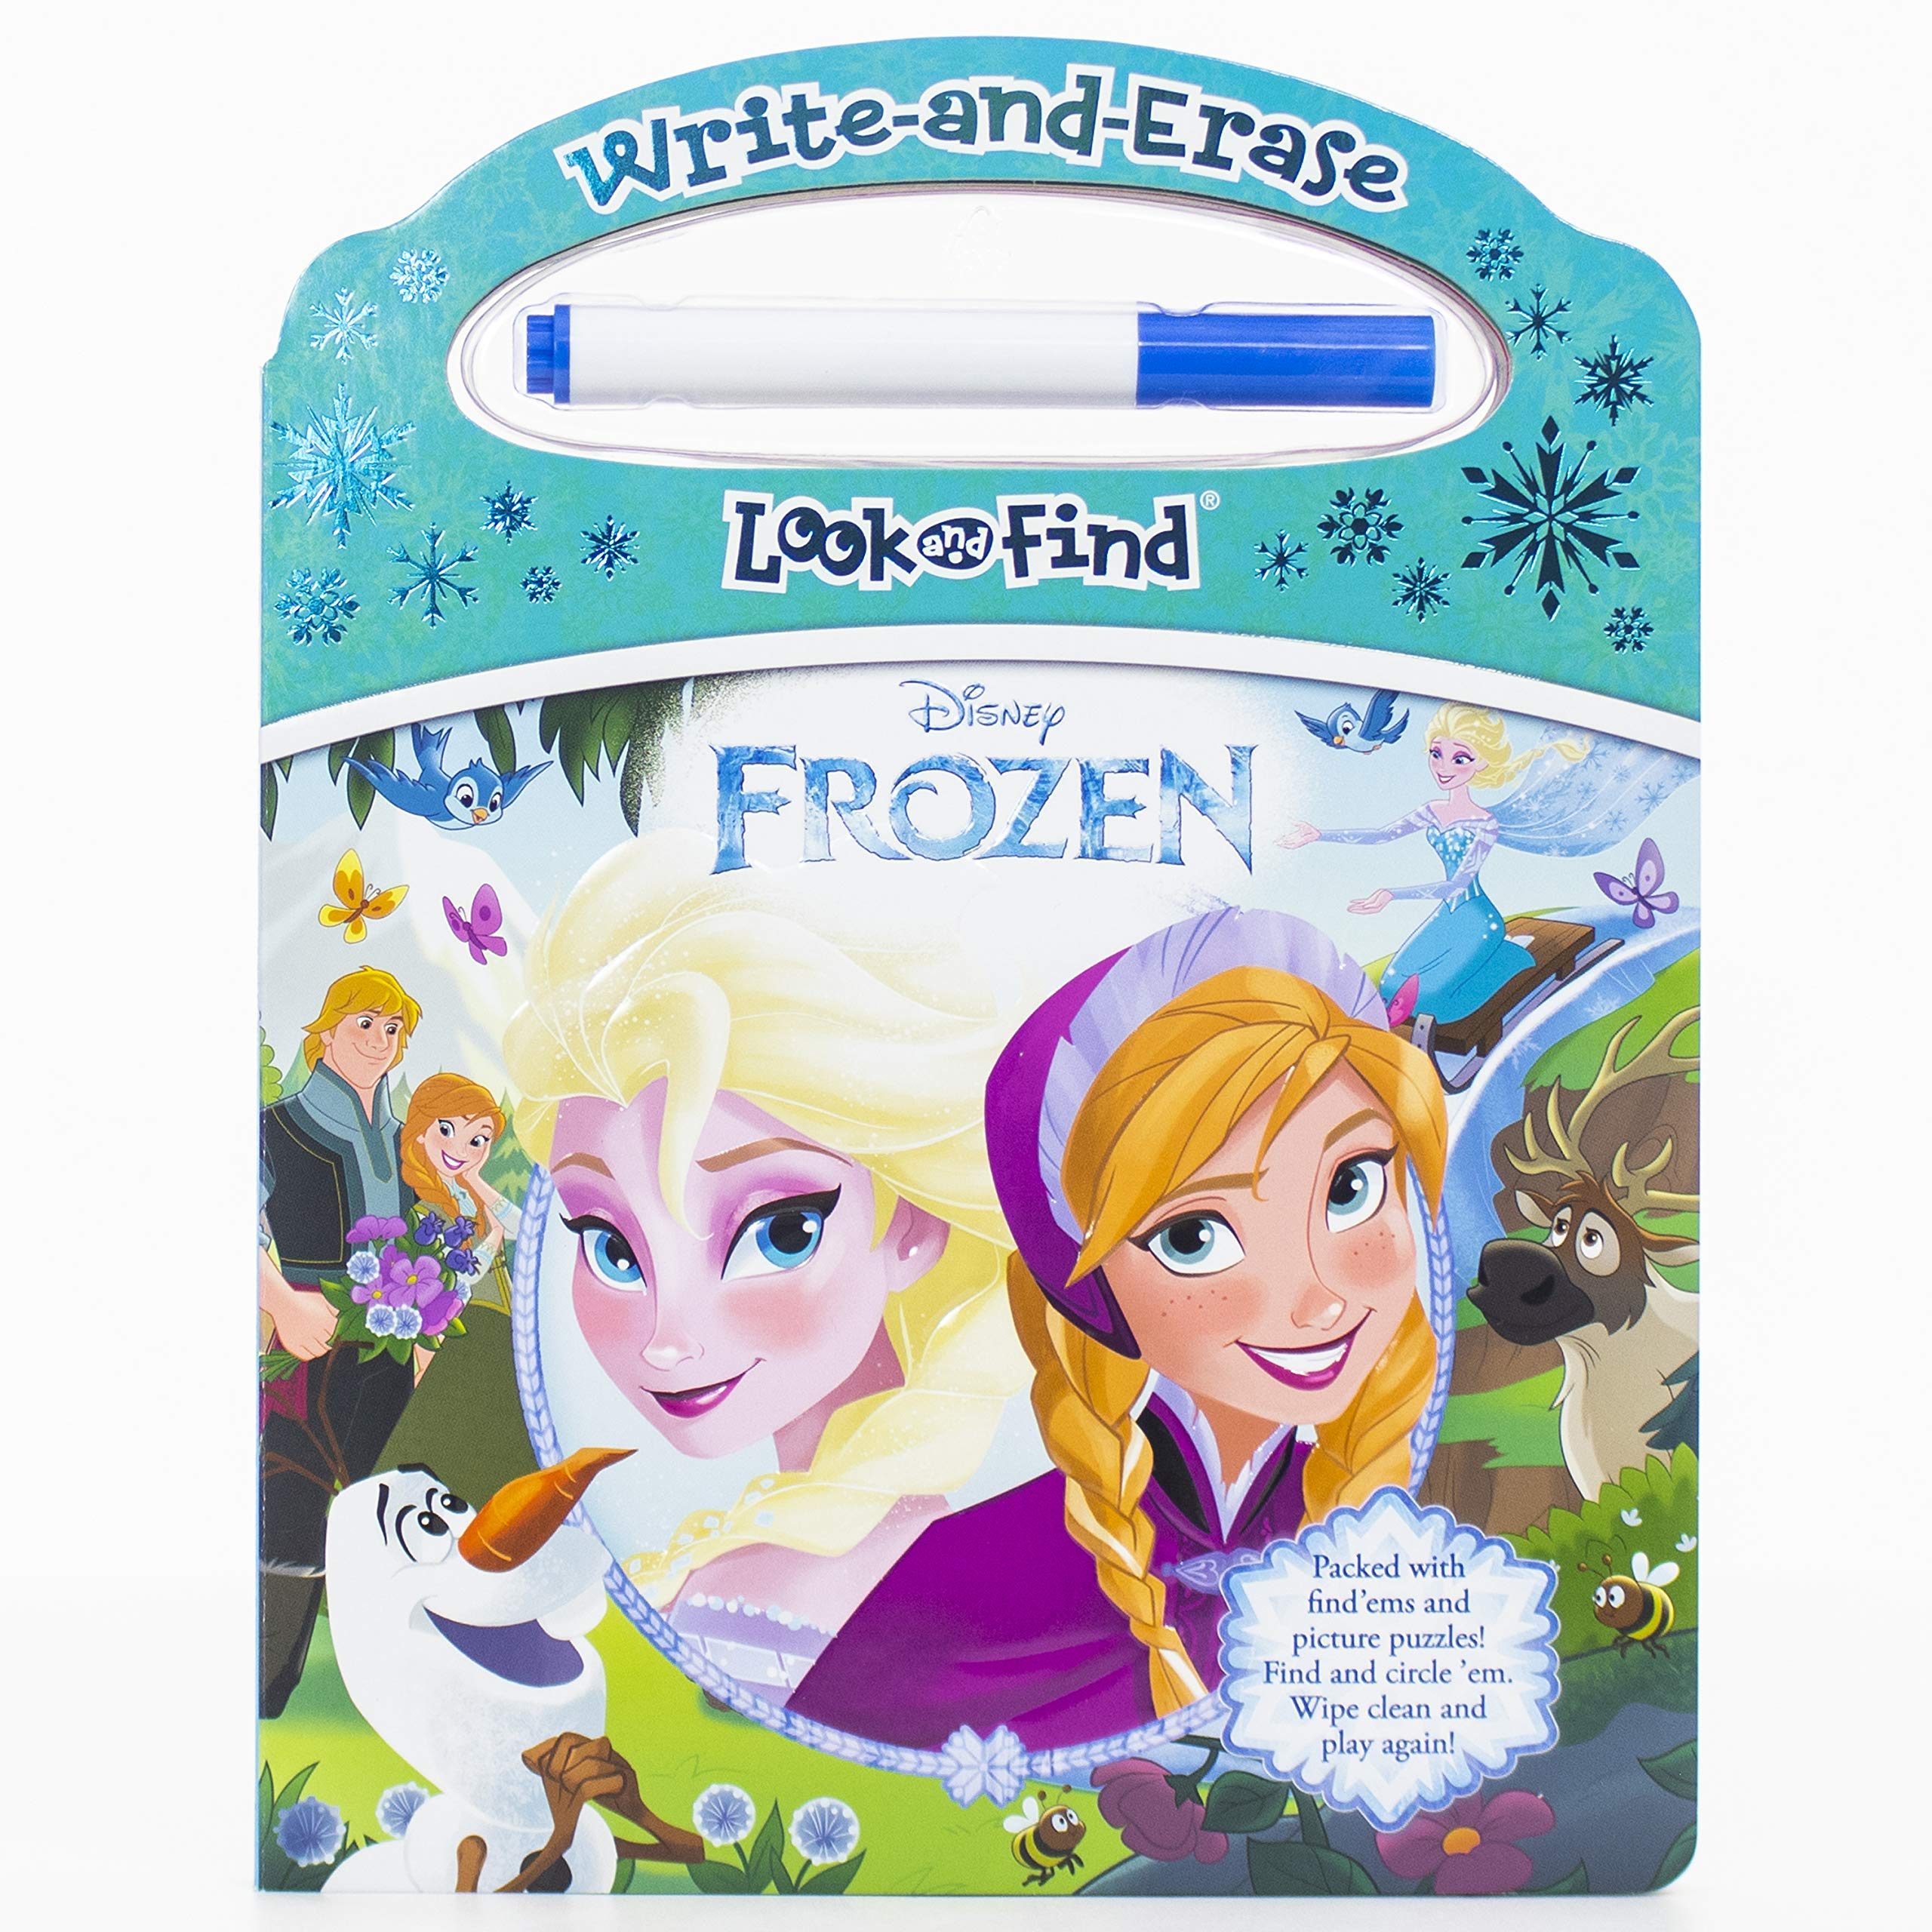 Disney Frozen – Write-and-Erase Look and Find – Wipe Clean Learning Board – PI Kids Board book $4.99 (Reg $11.99) on Amazon